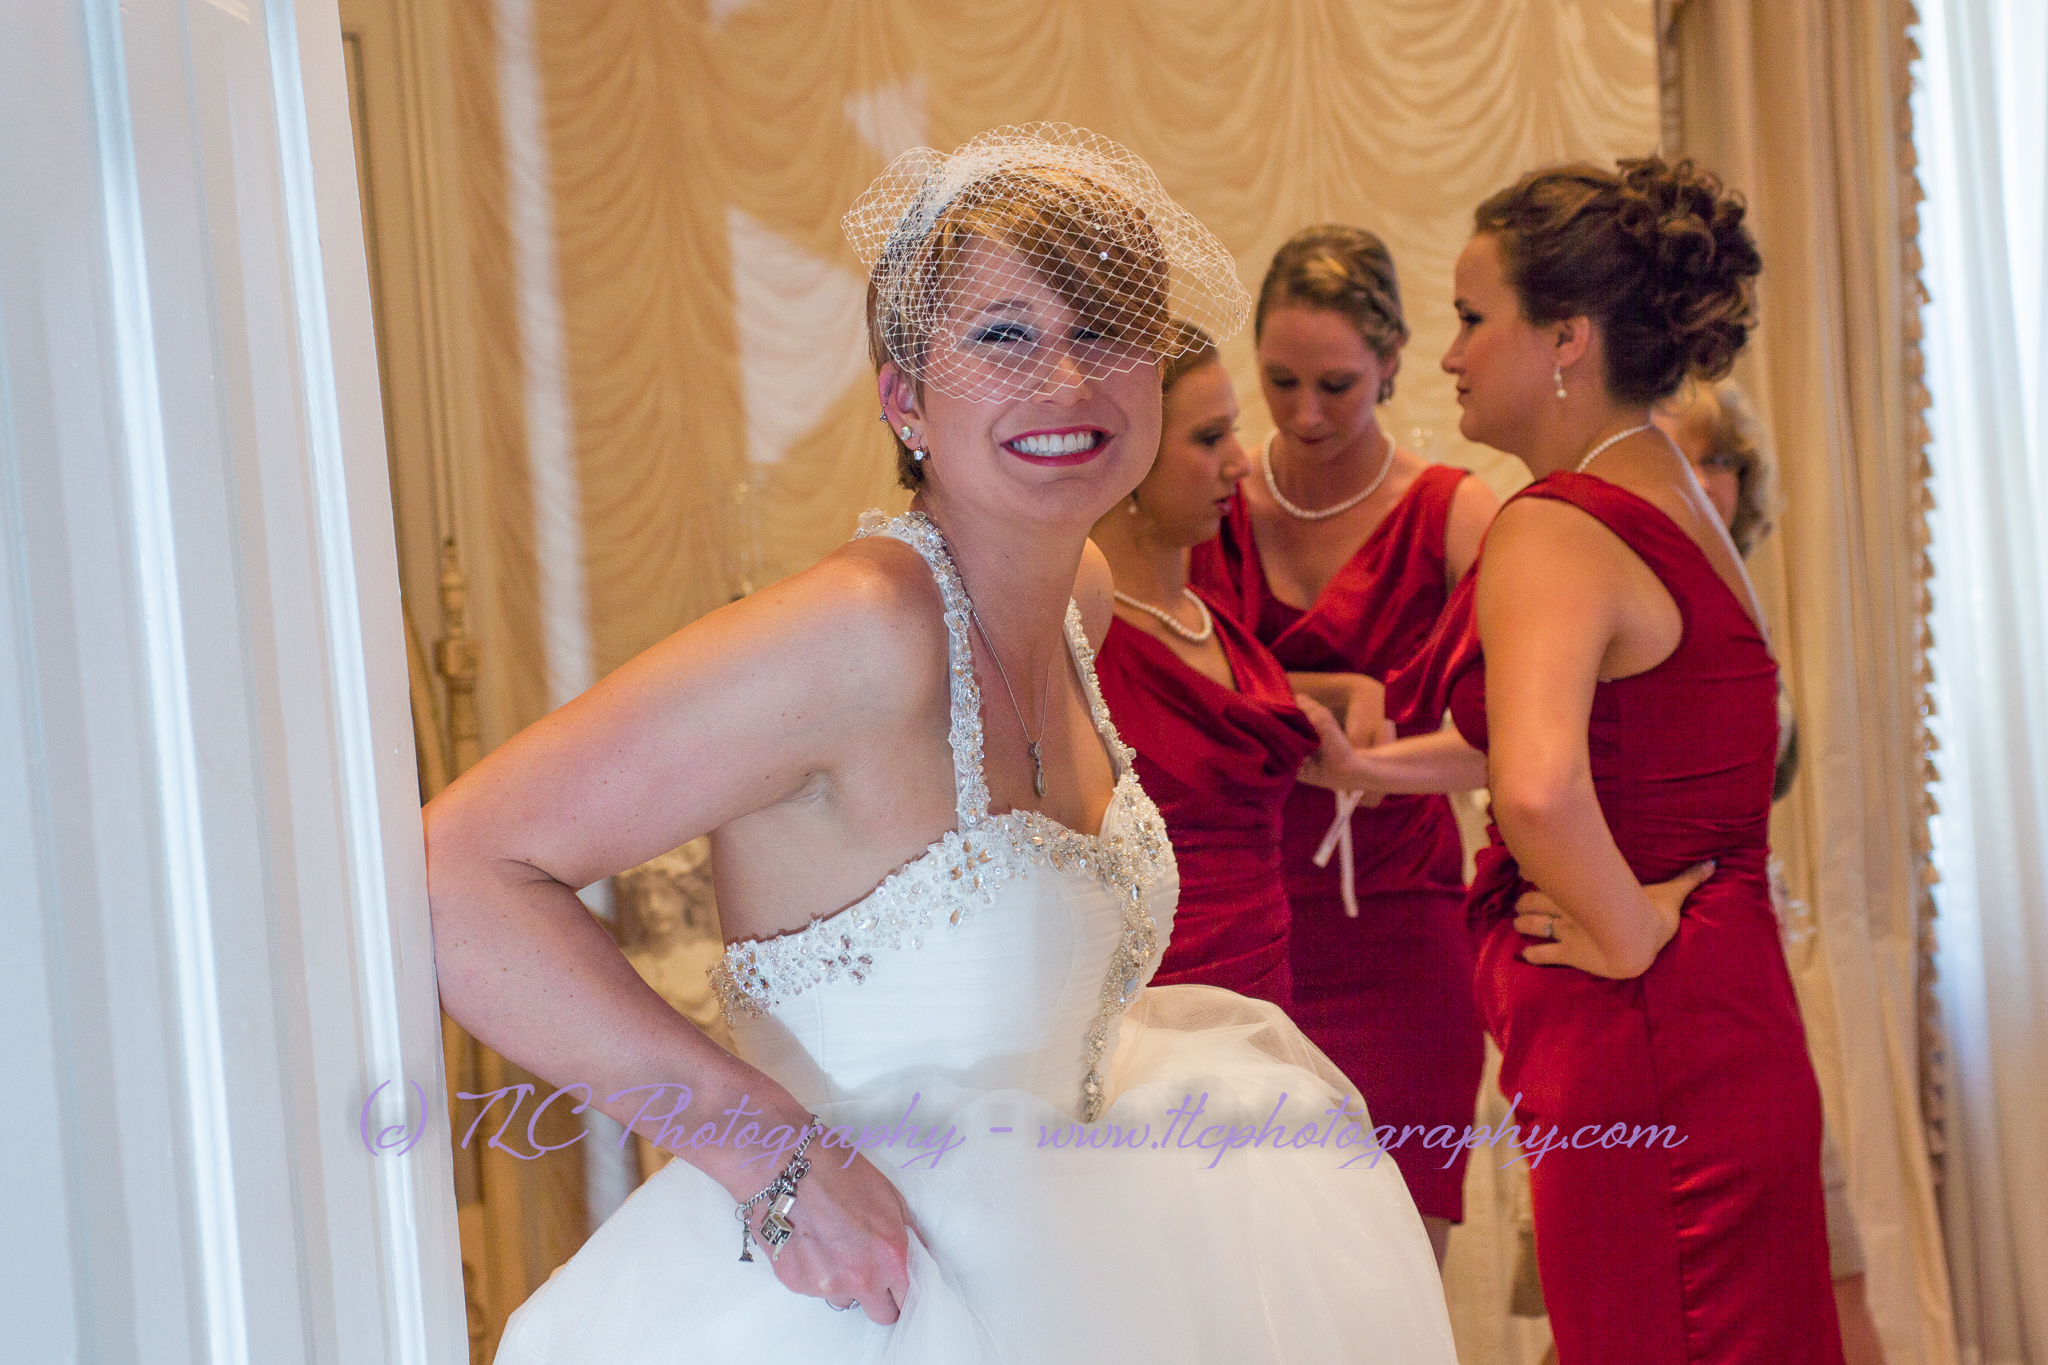 The bride getting ready at McFarland House's Bridal Suite